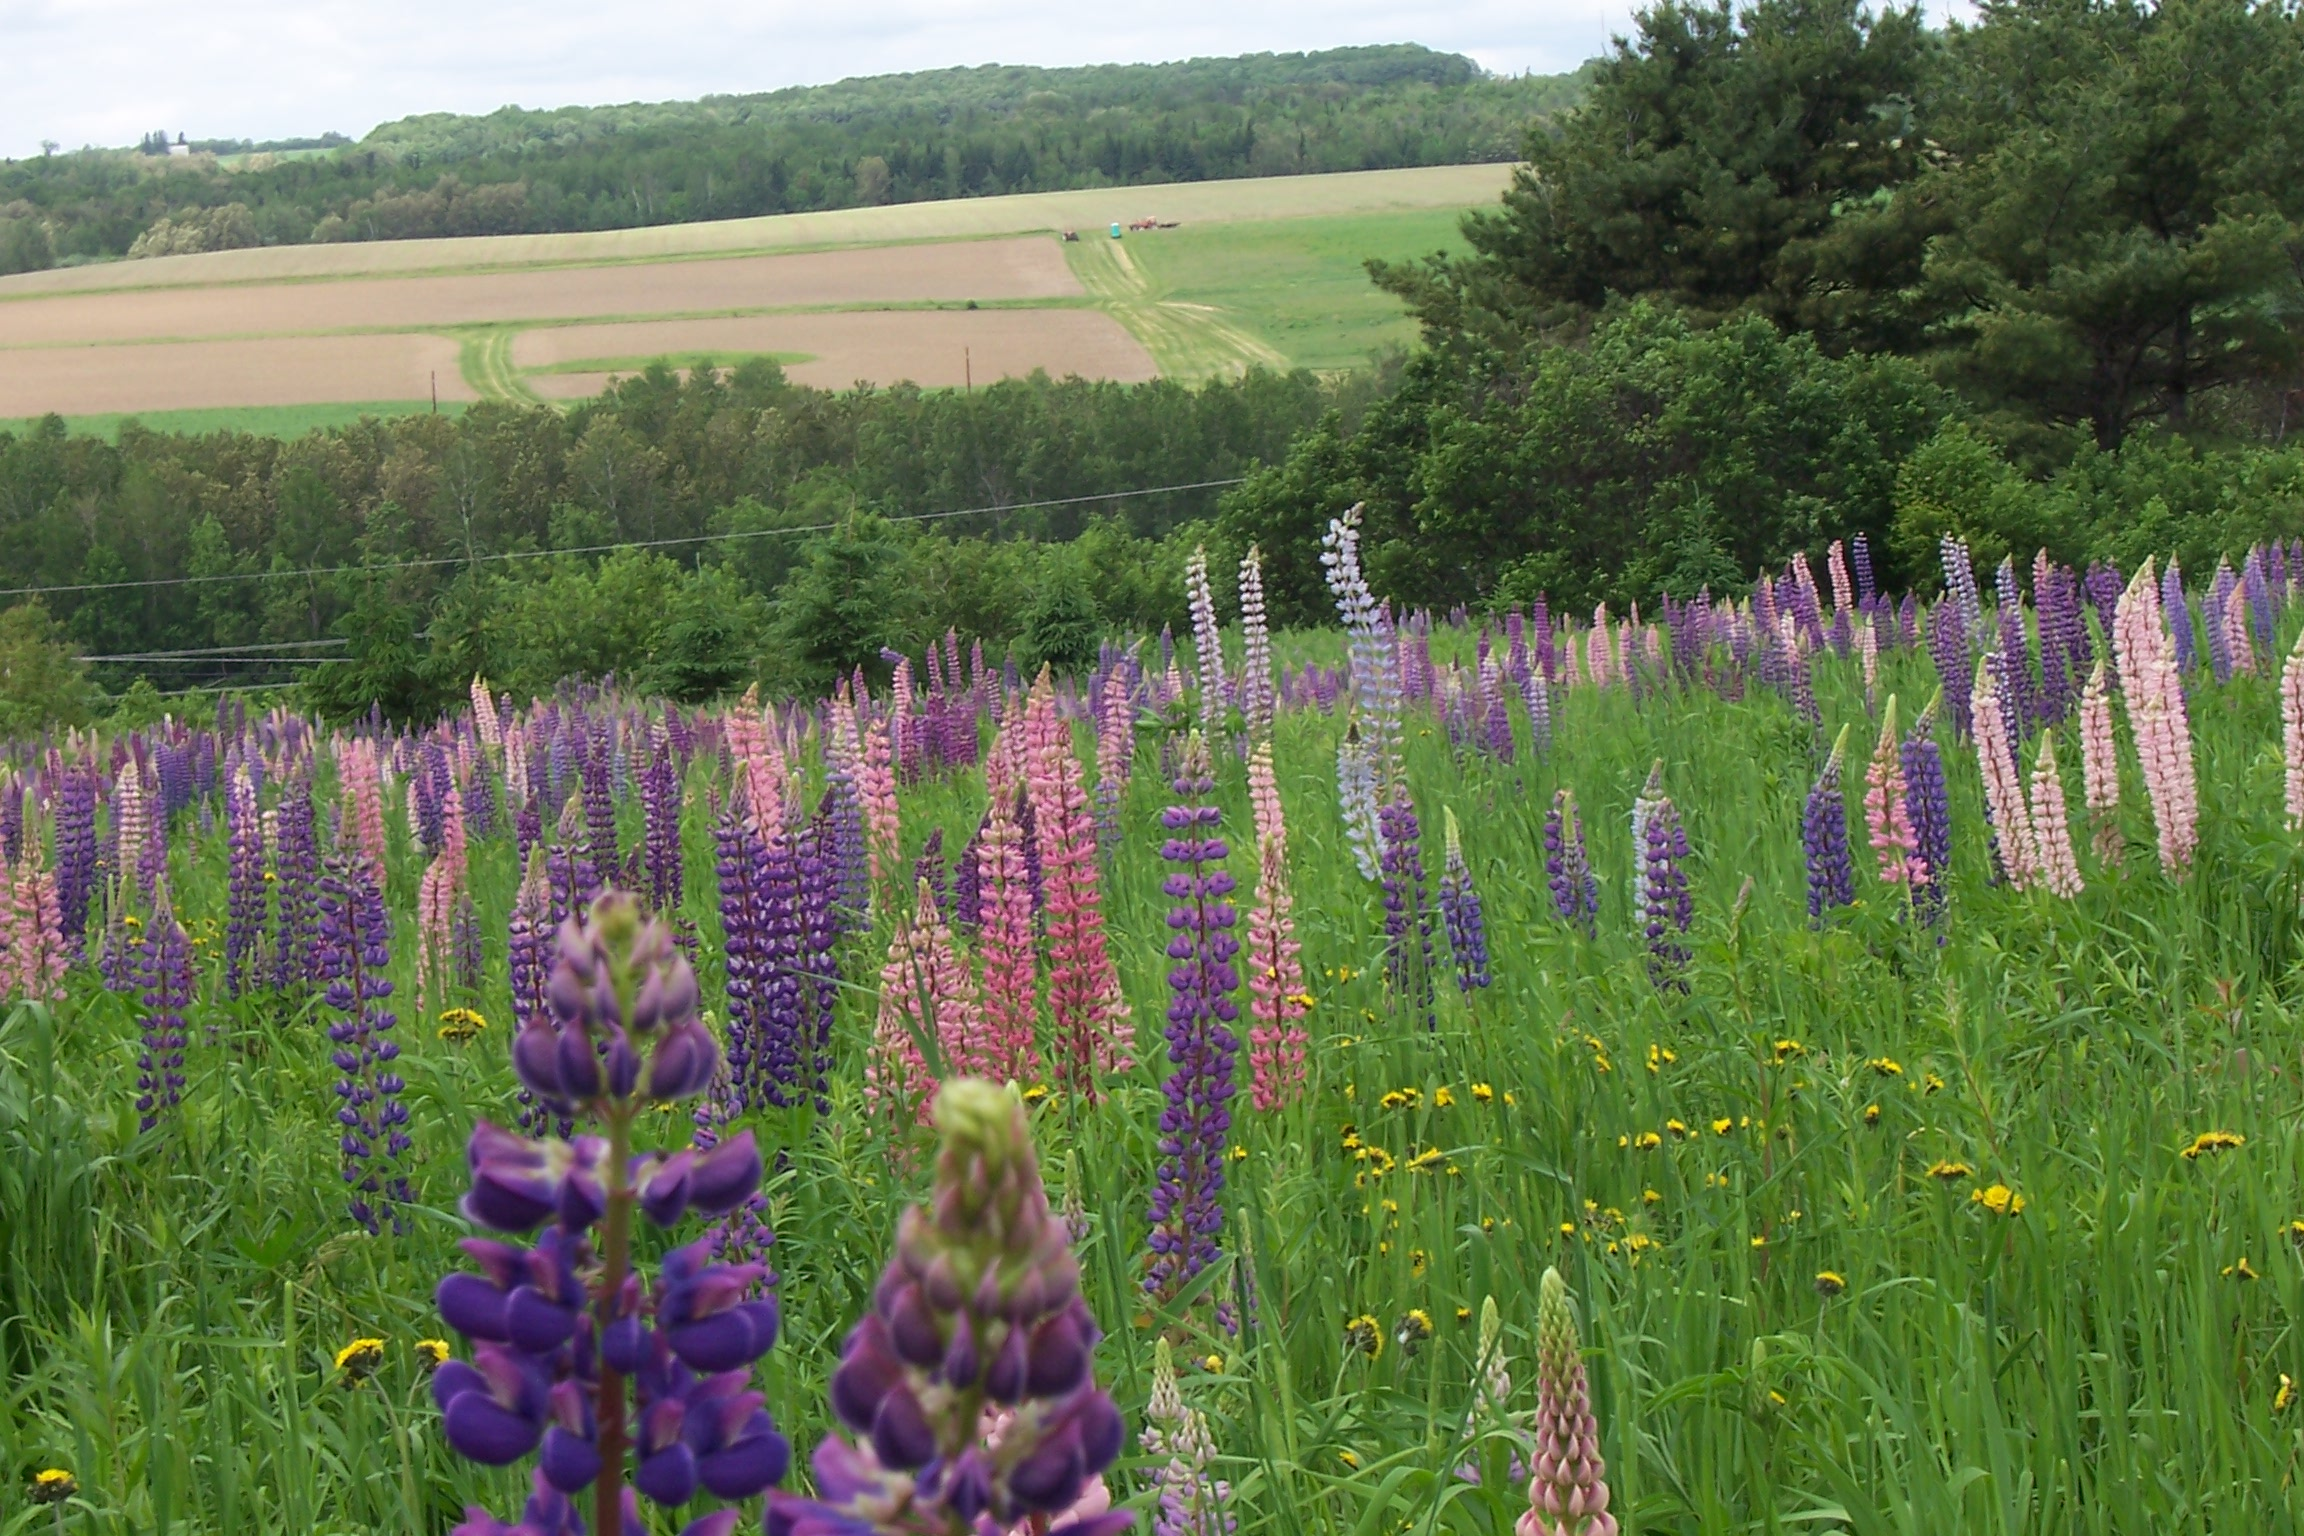 Fields of lupine.